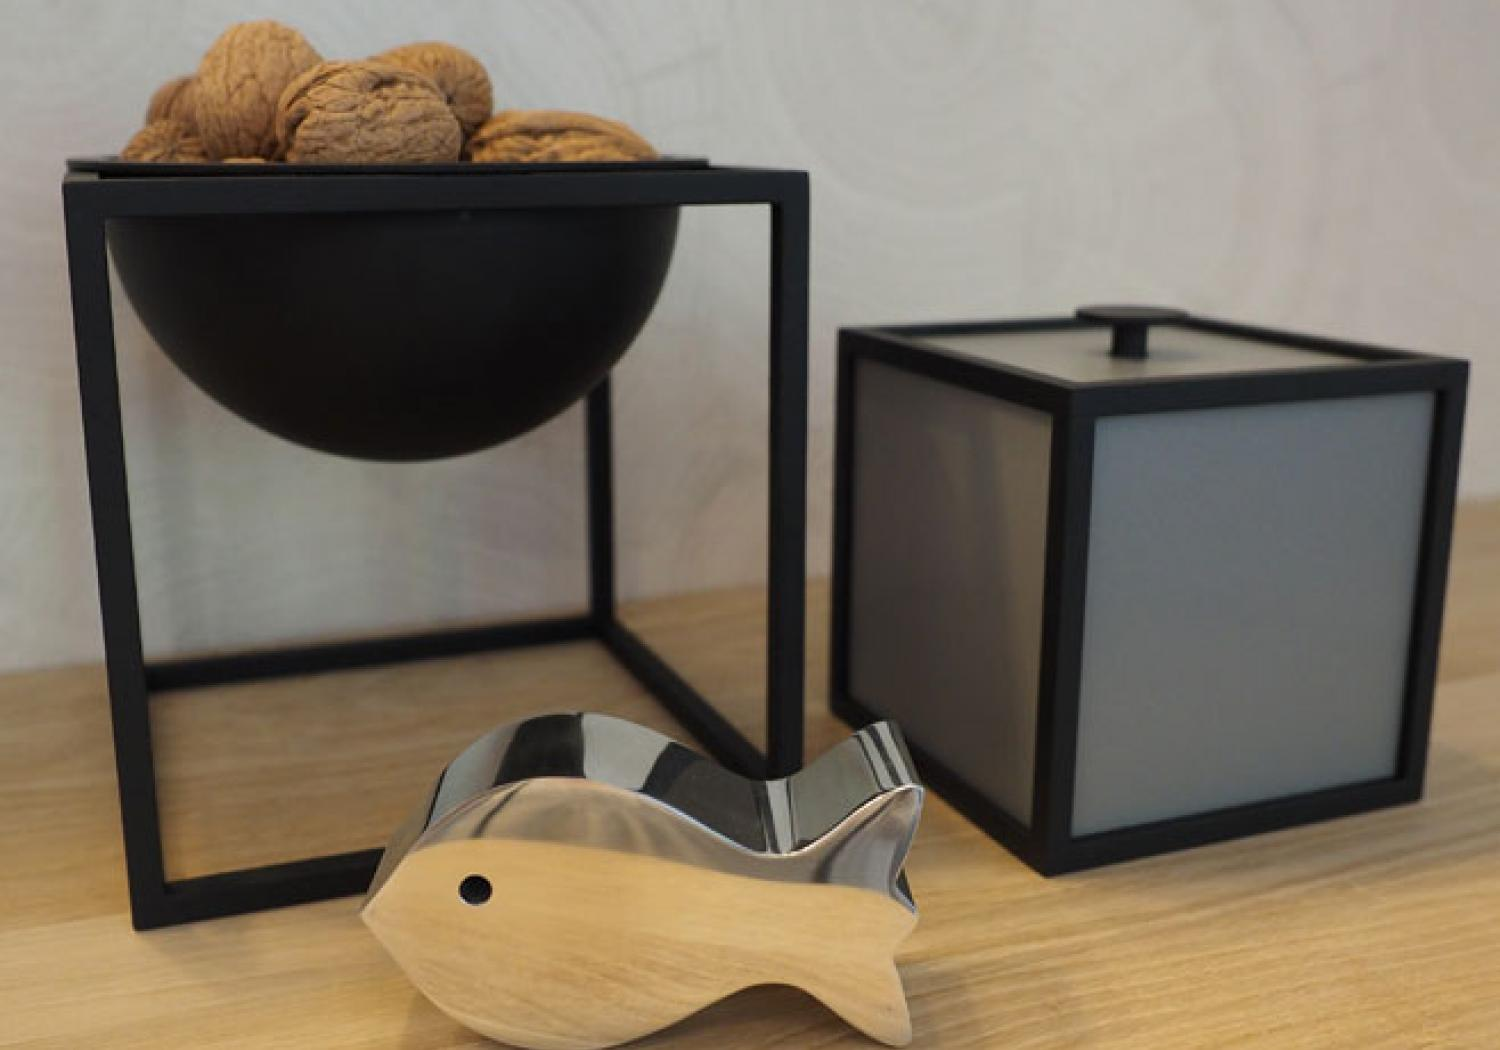 By Lassen / Georg Jensen - Kubus Bowl and Frame boxes by Mogens Lassen / Fish by Alfredo Häberli (part of set)